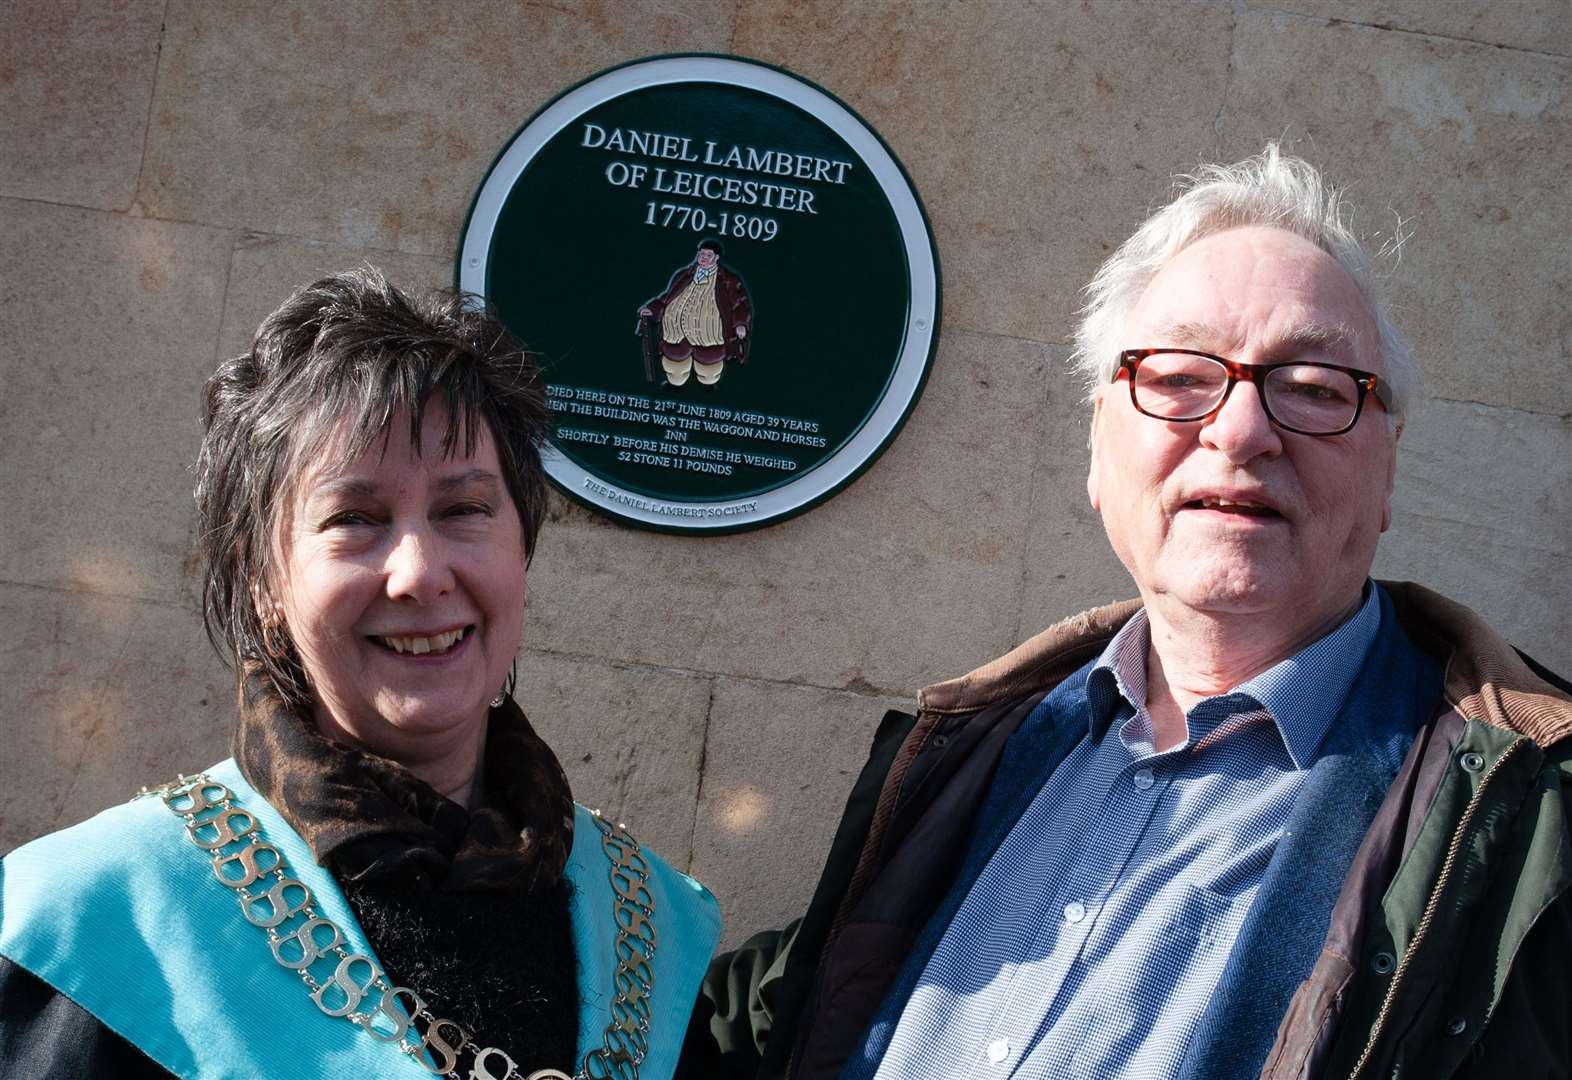 Plaque unveiled to remember Stamford's 'big man' Daniel lambert